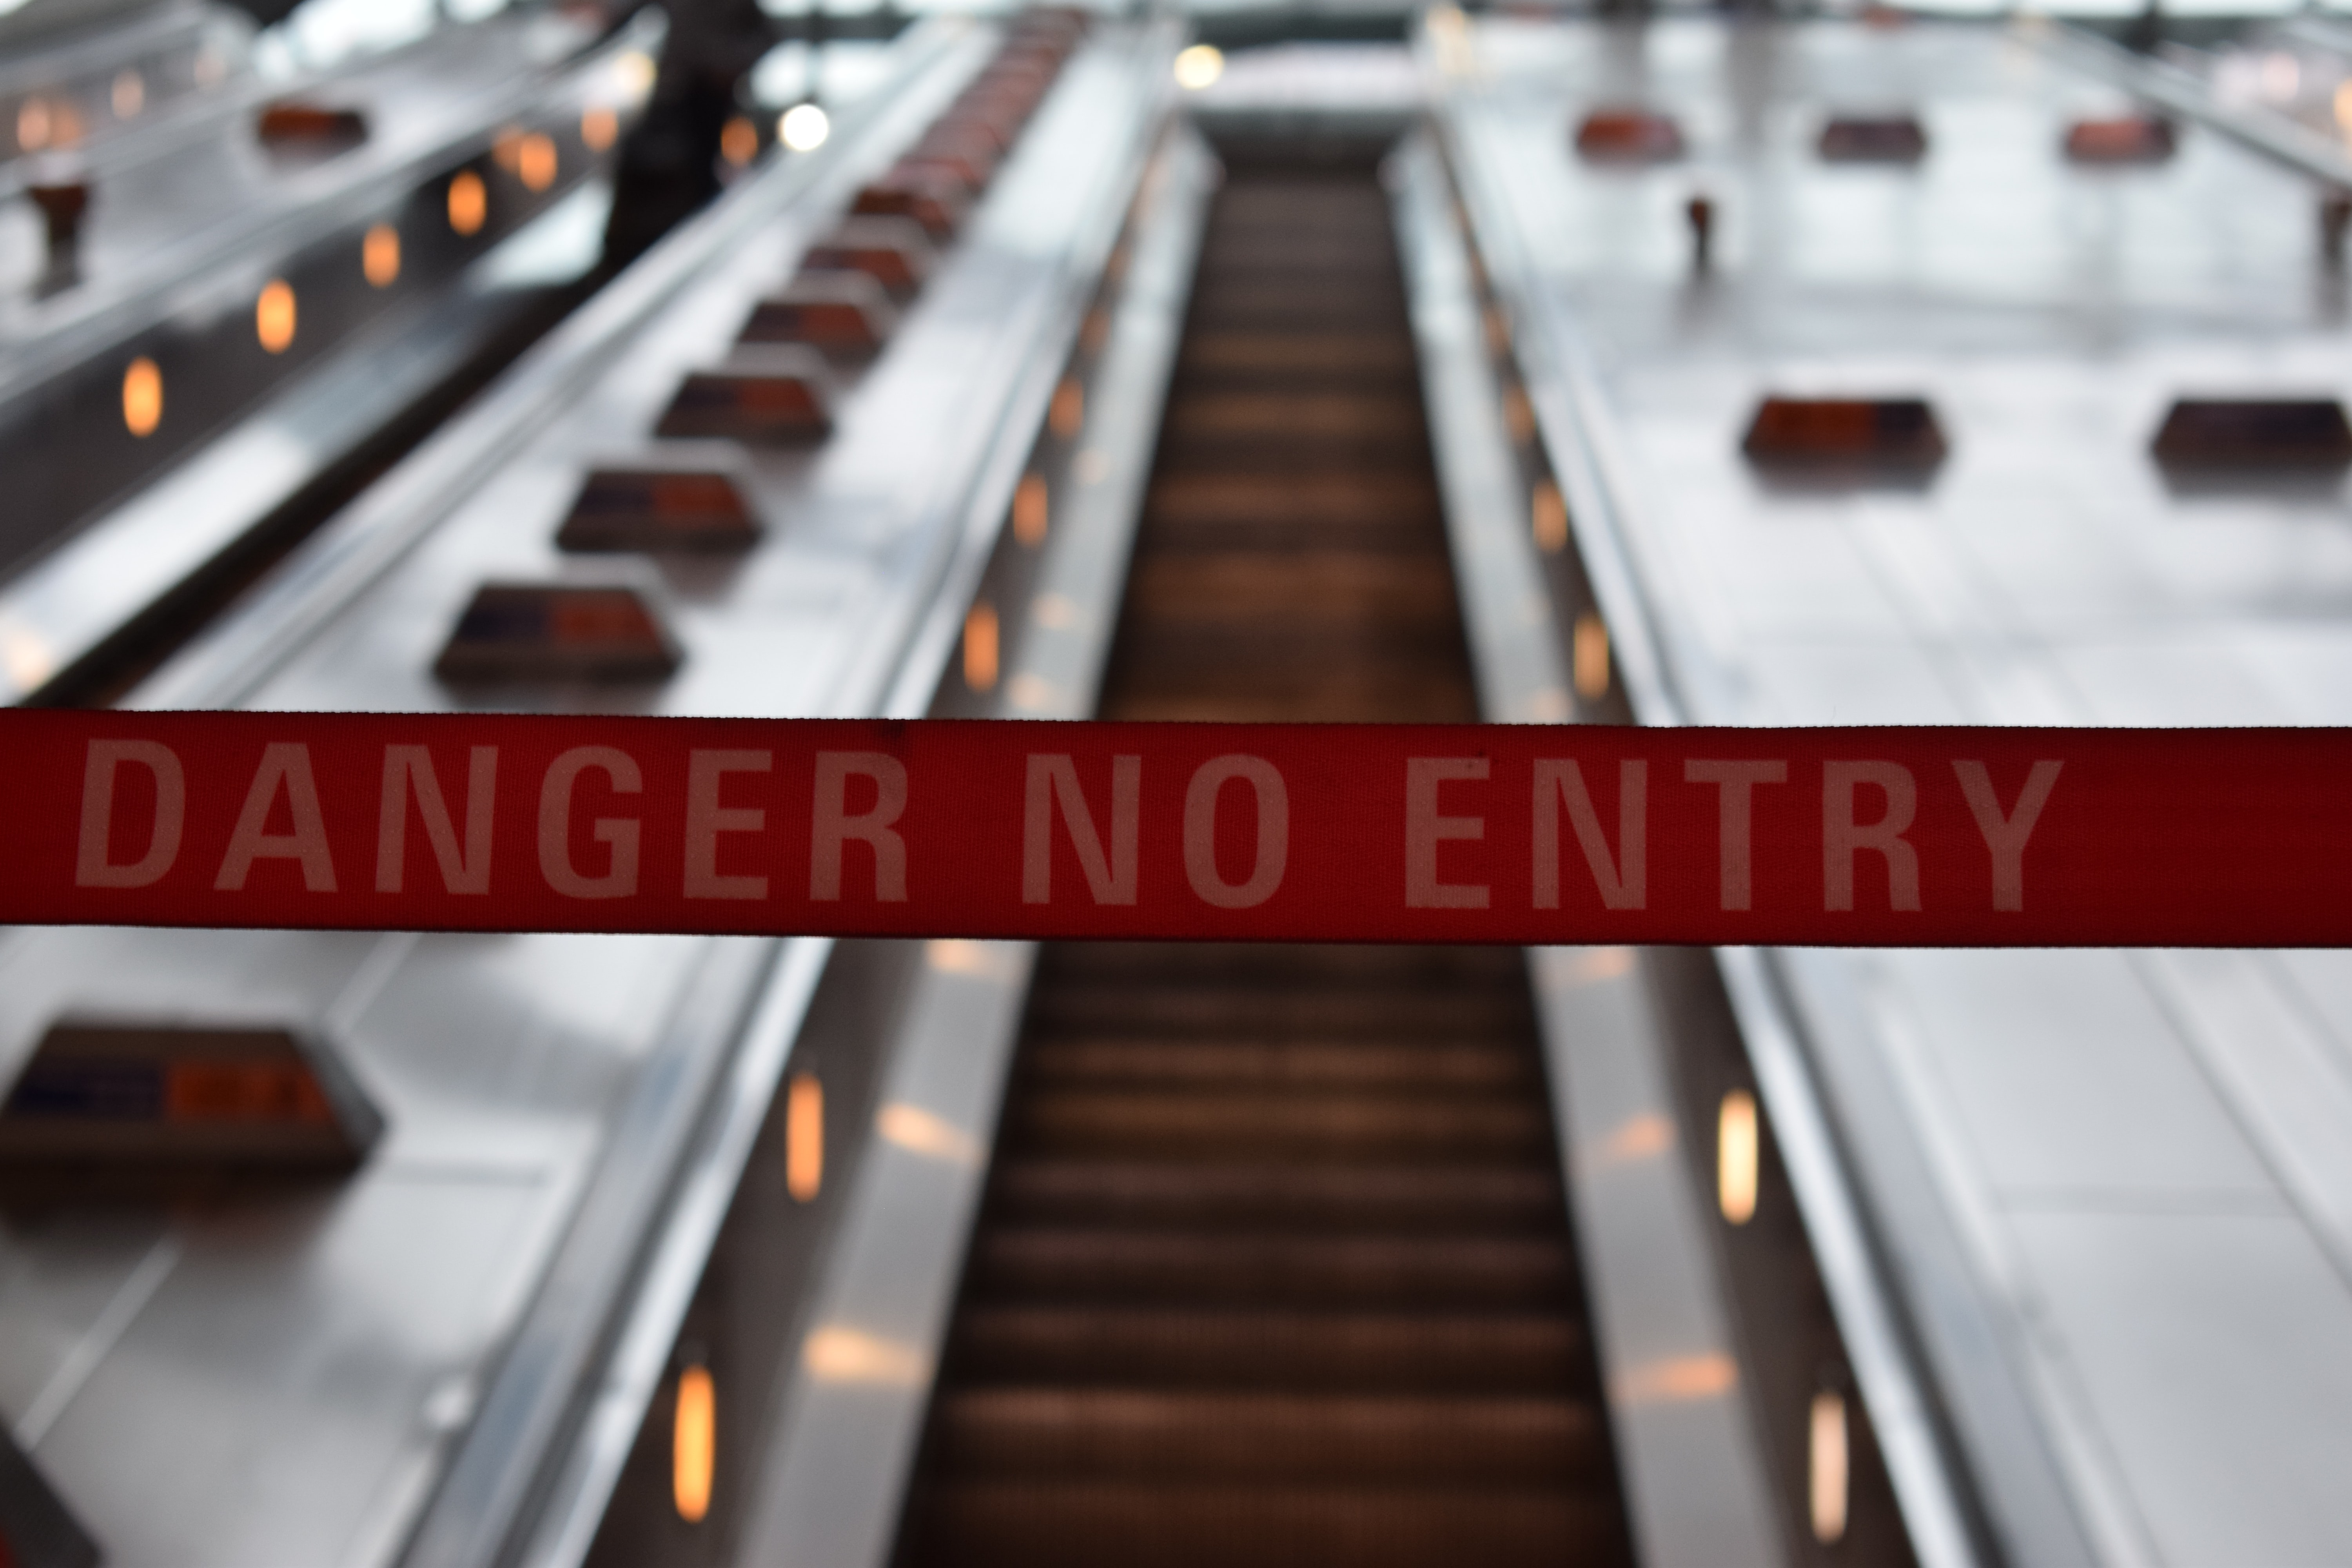 danger no entry sign in front of escalator